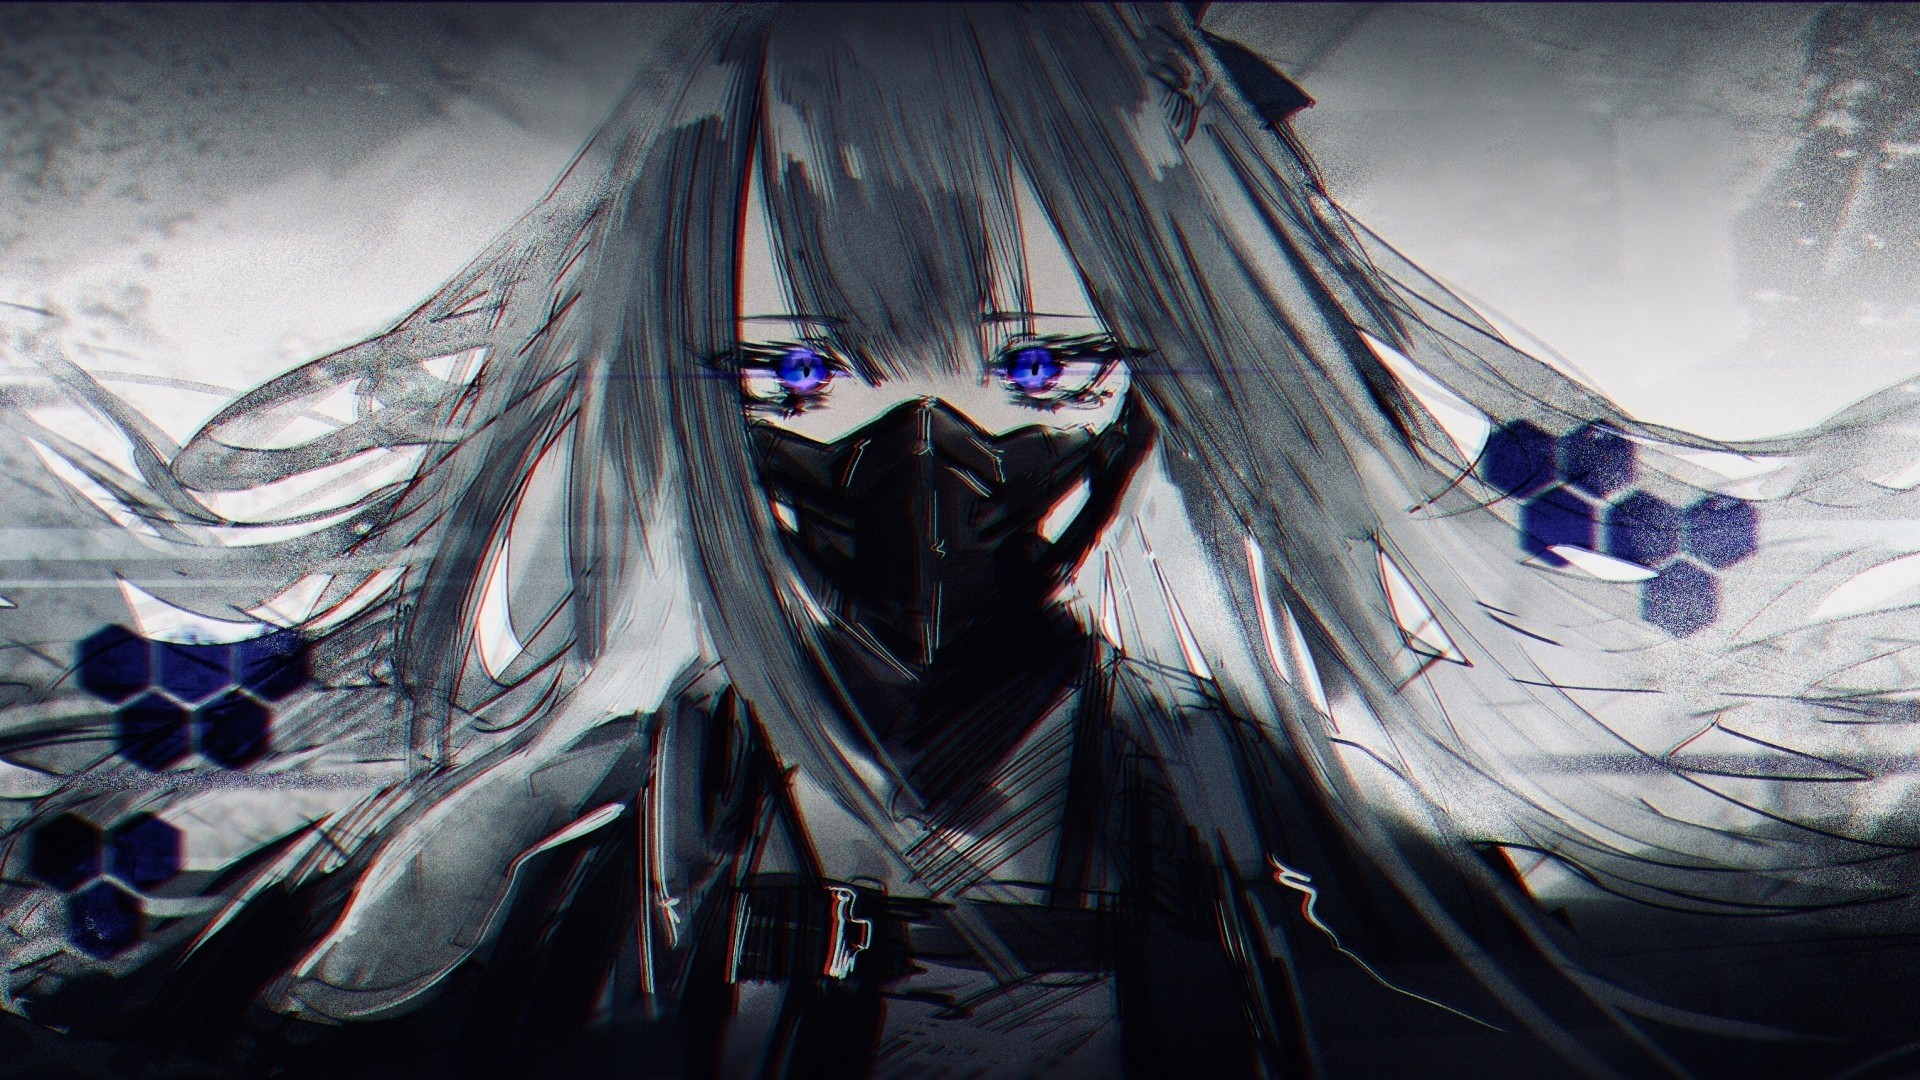 Anime Girl With Gas Mask Free Wallpaper and Background